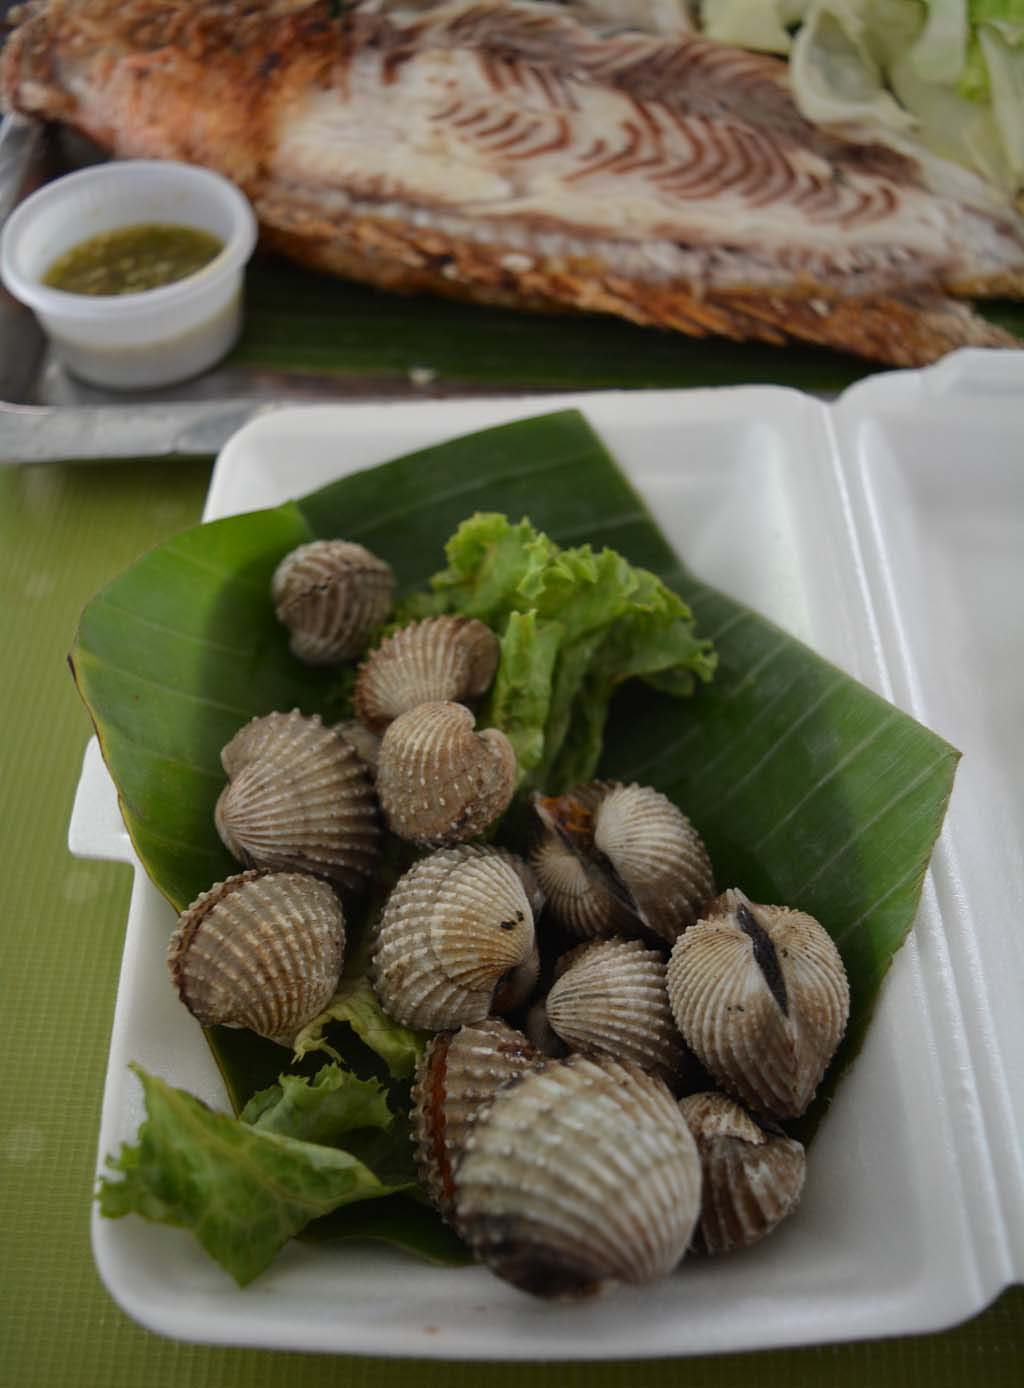 Our-Fish-and-Clam-meal-at-Taling-Chan-Floating-Market-thailand